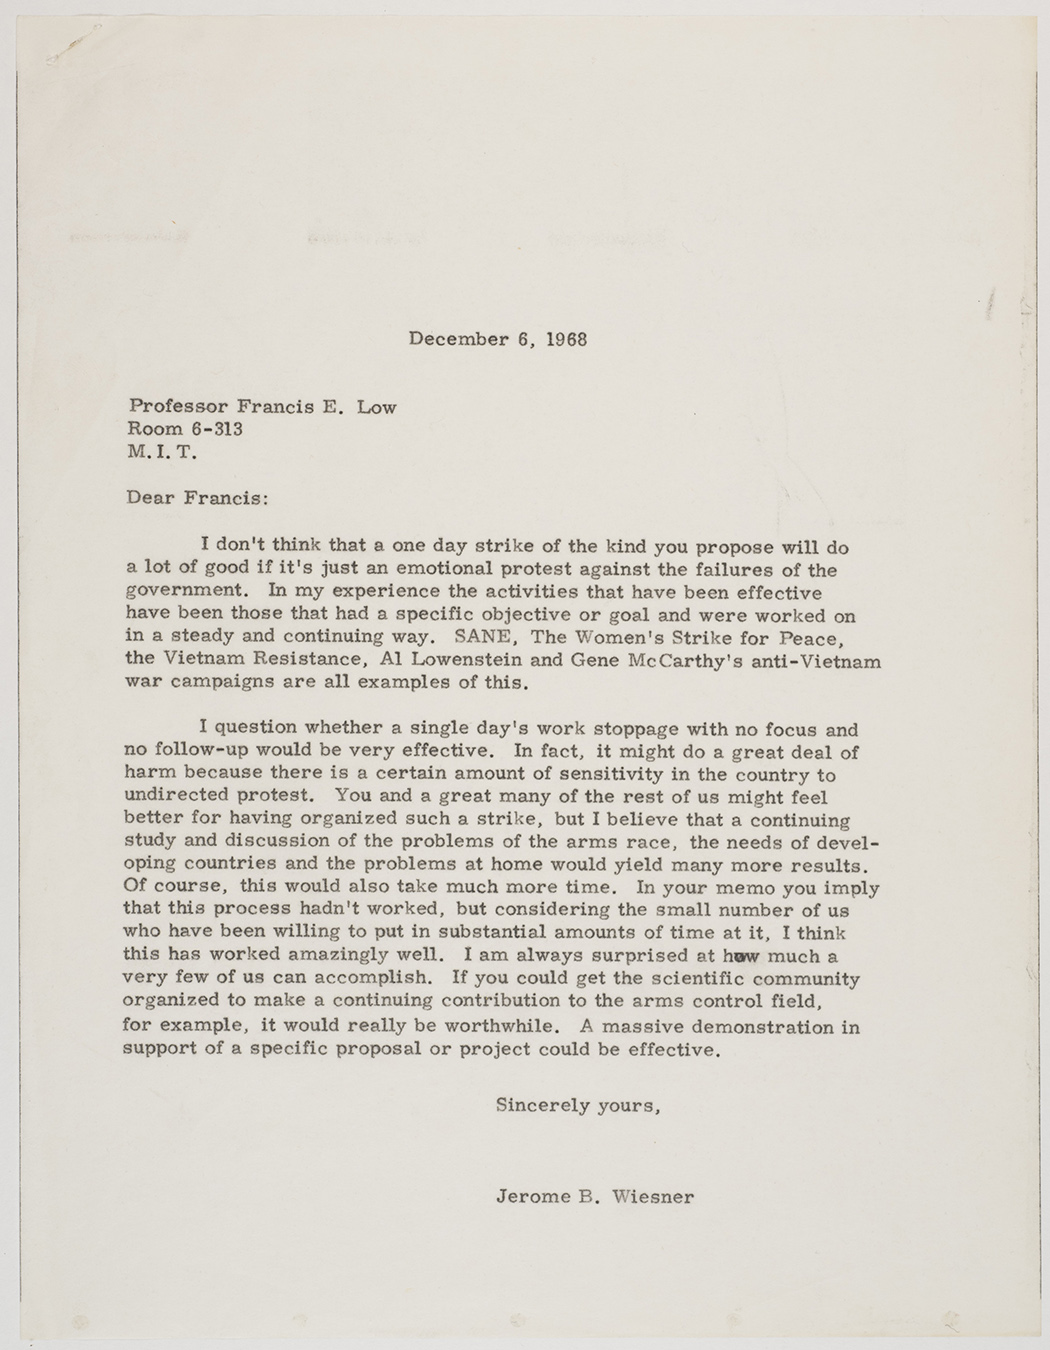 Letter from Jerome Wiesner to Francis Low, 1968 December 6, AC-0008, Box 98.